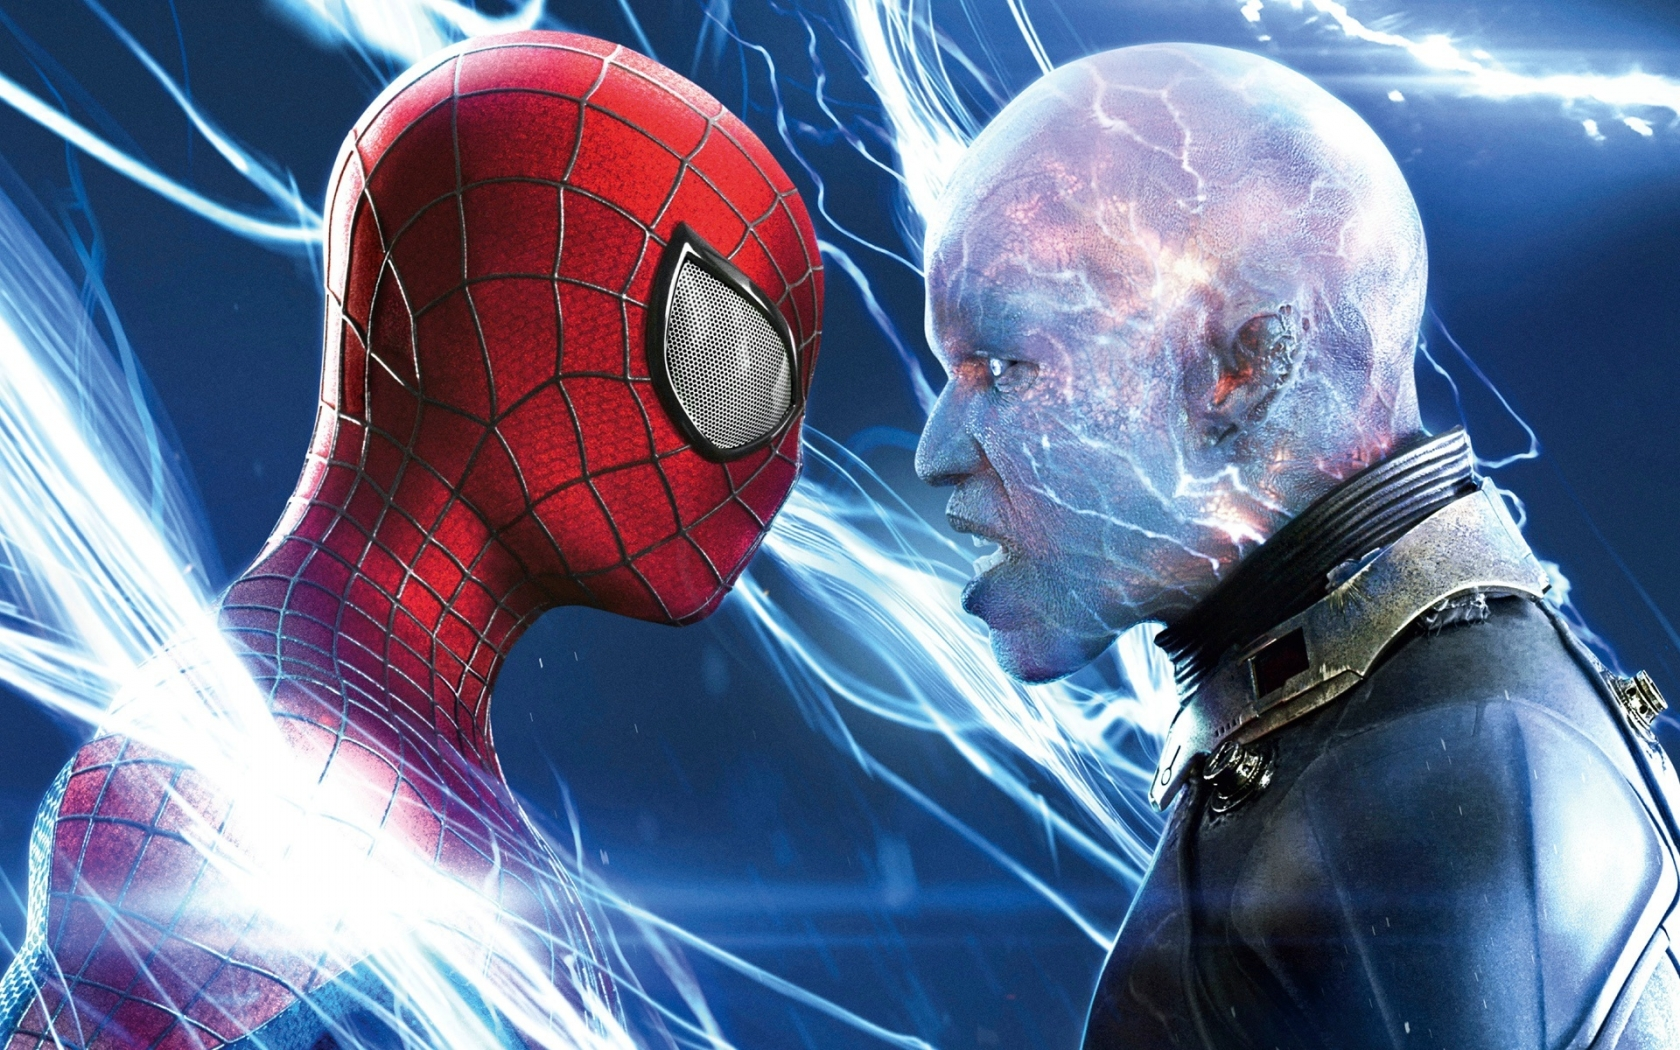 Spiderman vs Electro for 1680 x 1050 widescreen resolution